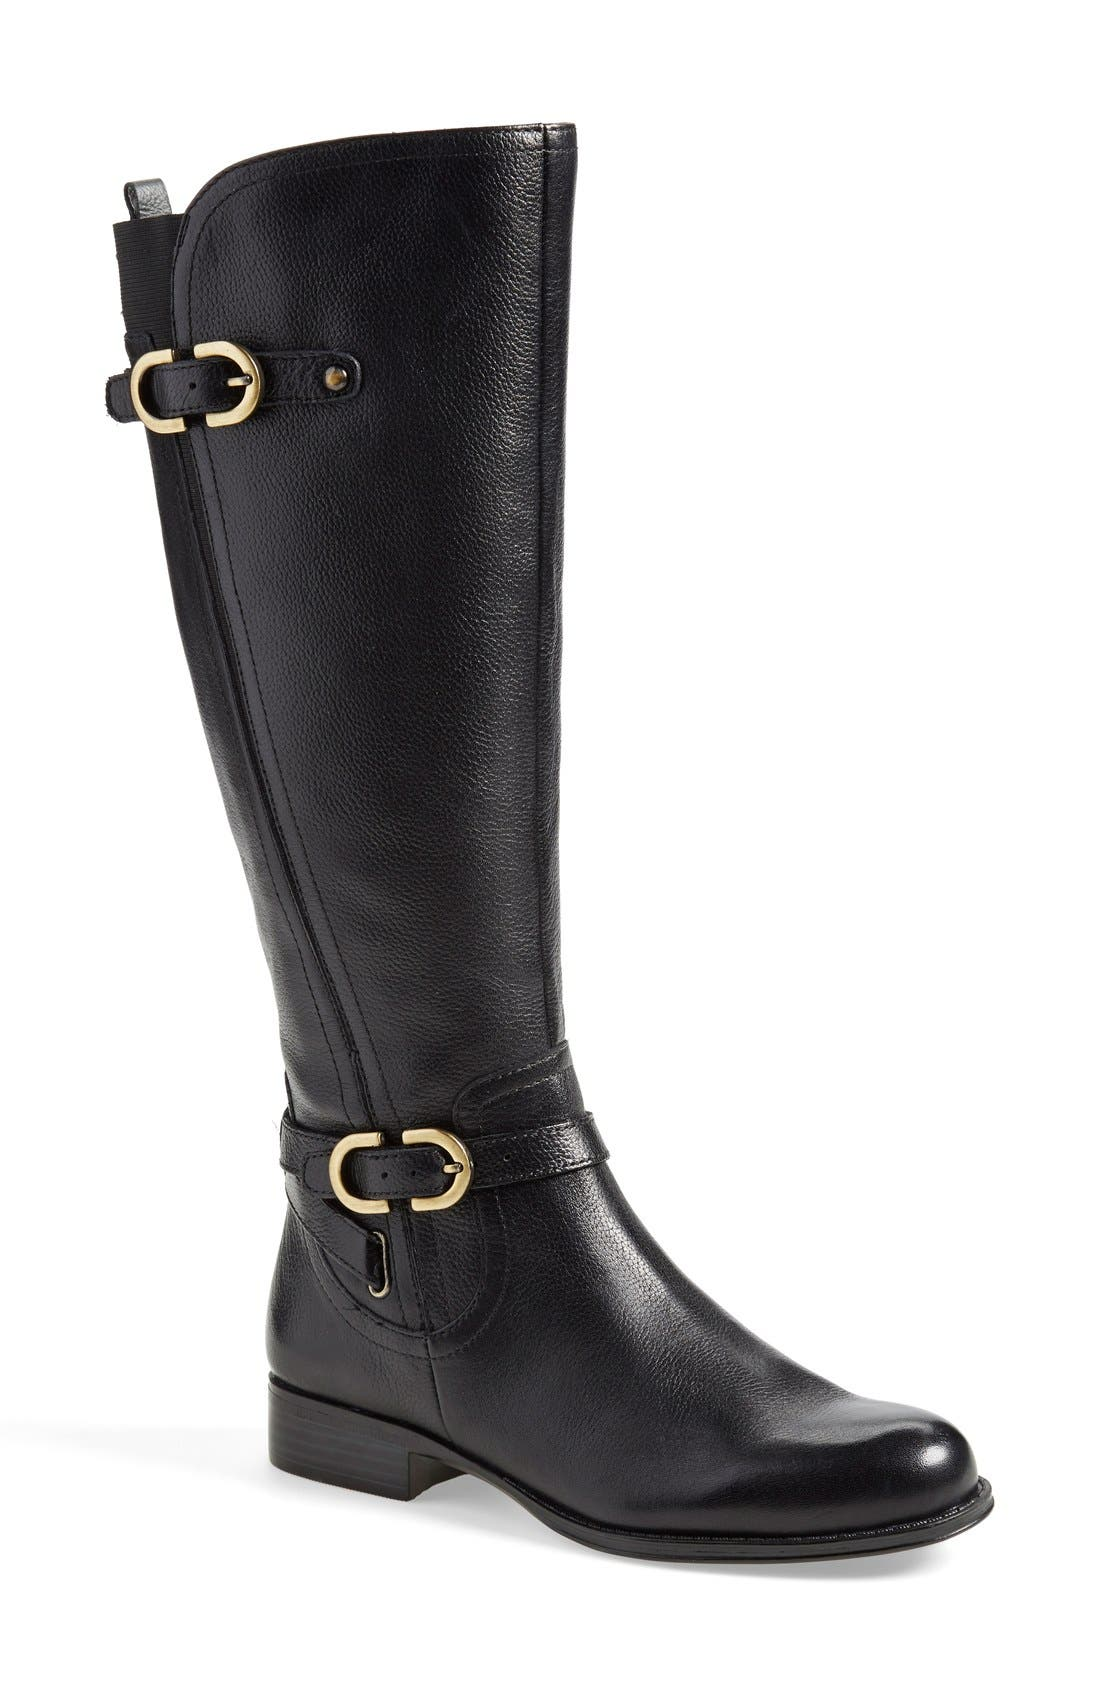 Main Image - Naturalizer 'Jennings' Knee High Boot (Women) (Wide Calf)